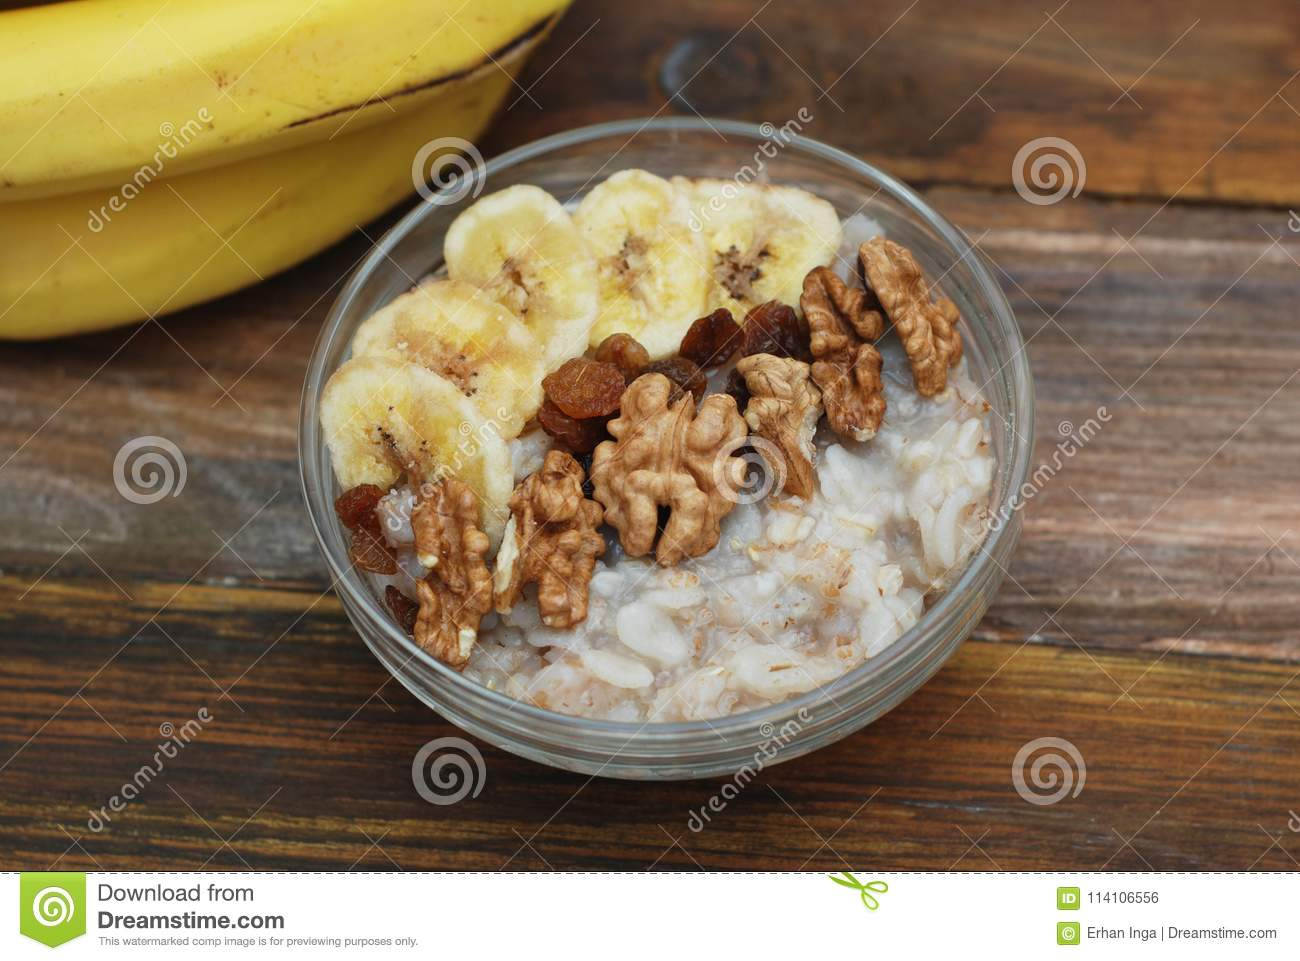 Top view of a Granola Bowl, Muesli with Oats, Nuts and Dried Fruit on Wooden table. Bannana, nuts, fruits. Healthy Breakfast. Diet